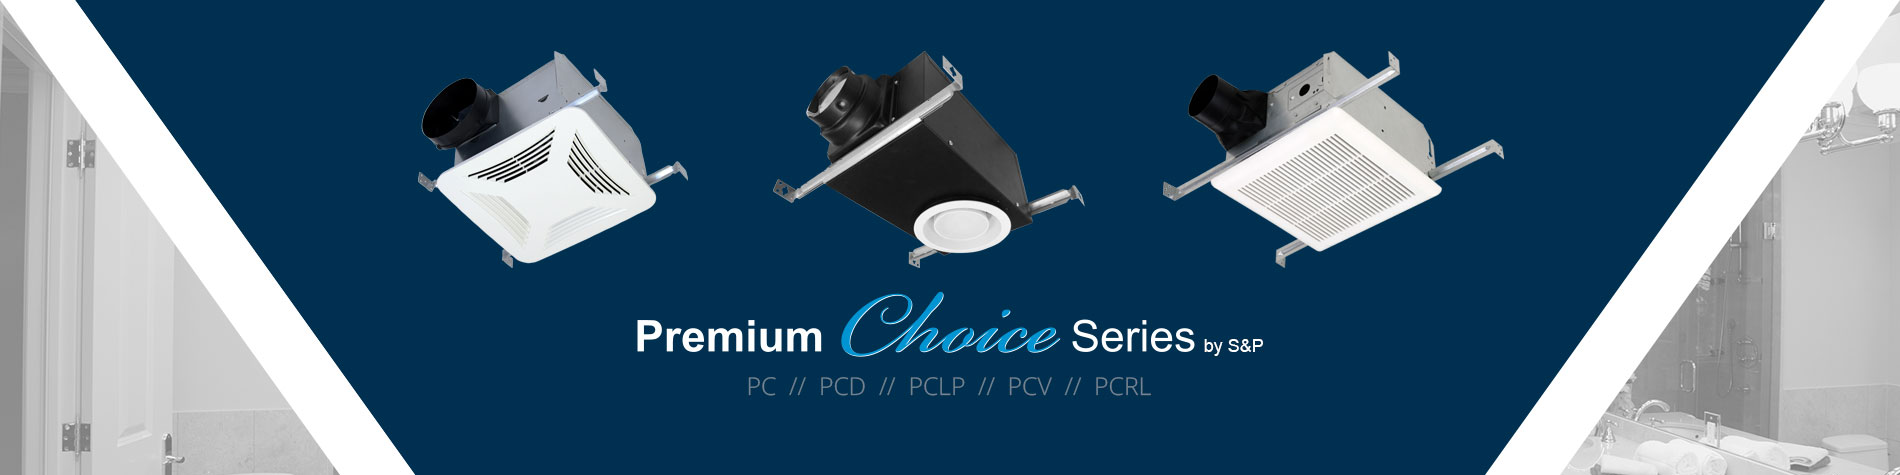 Premium CHOICE Series by S&P